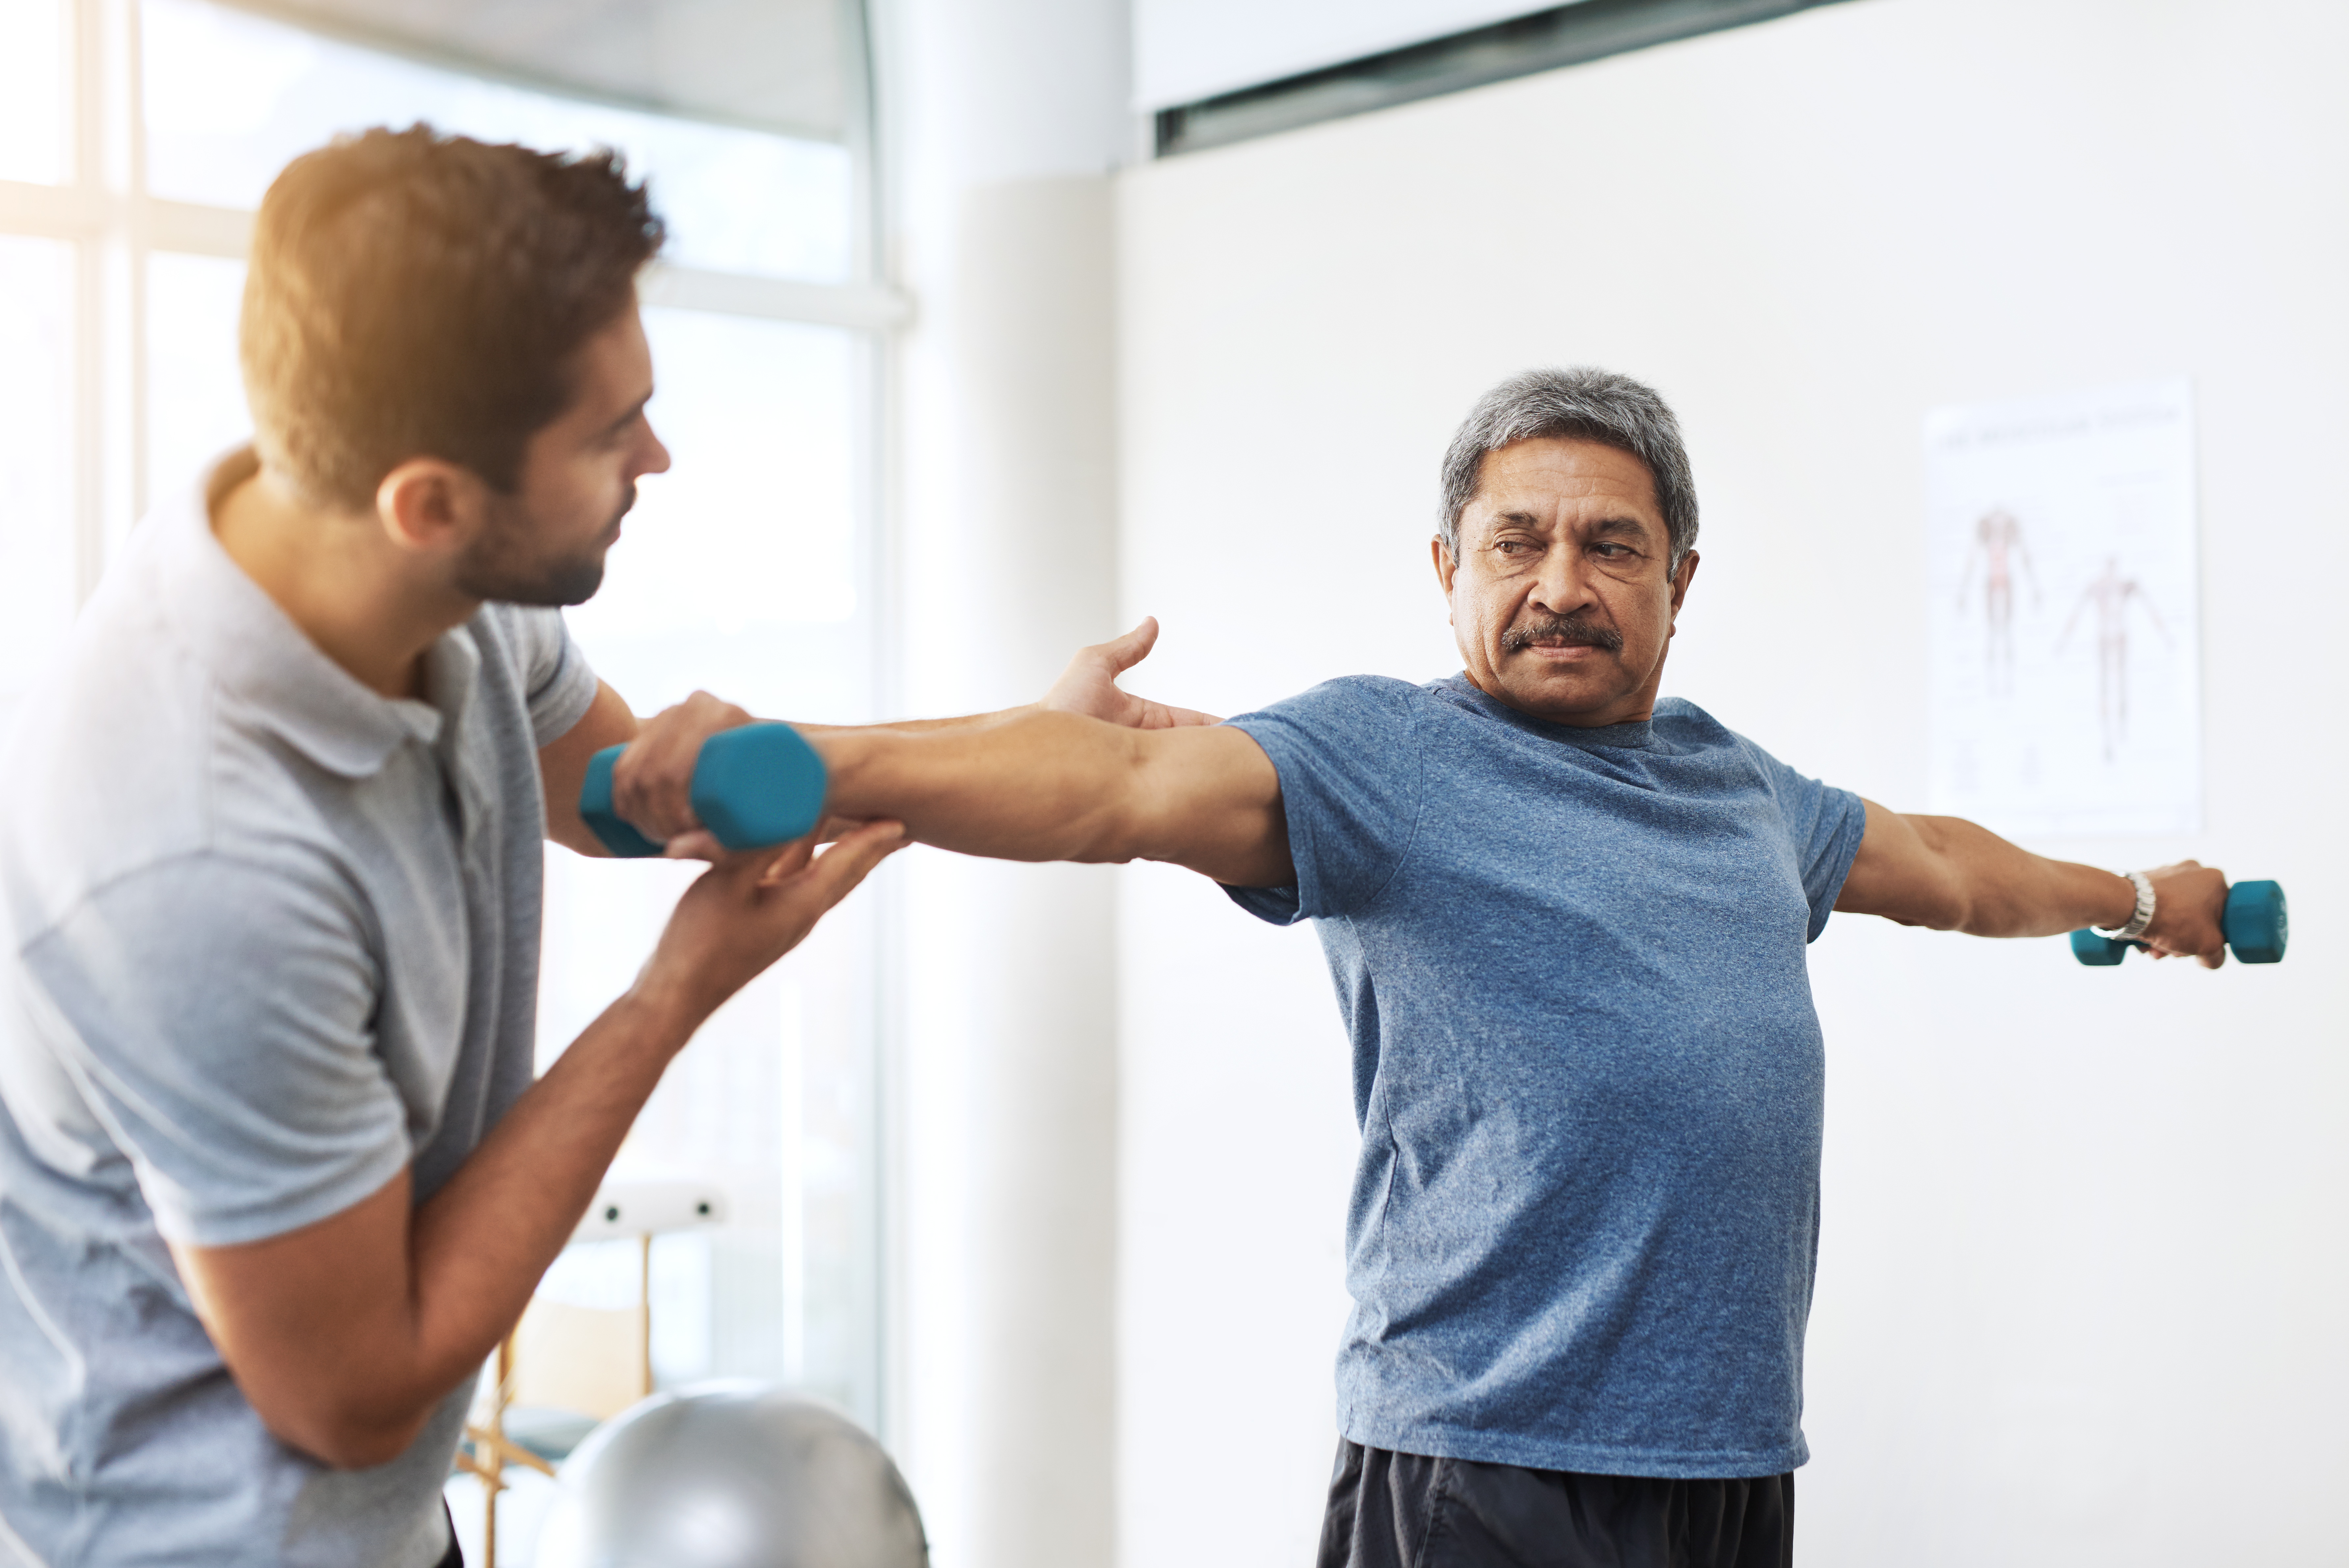 An older man is going through physical therapy using light weights with his physical  therapist